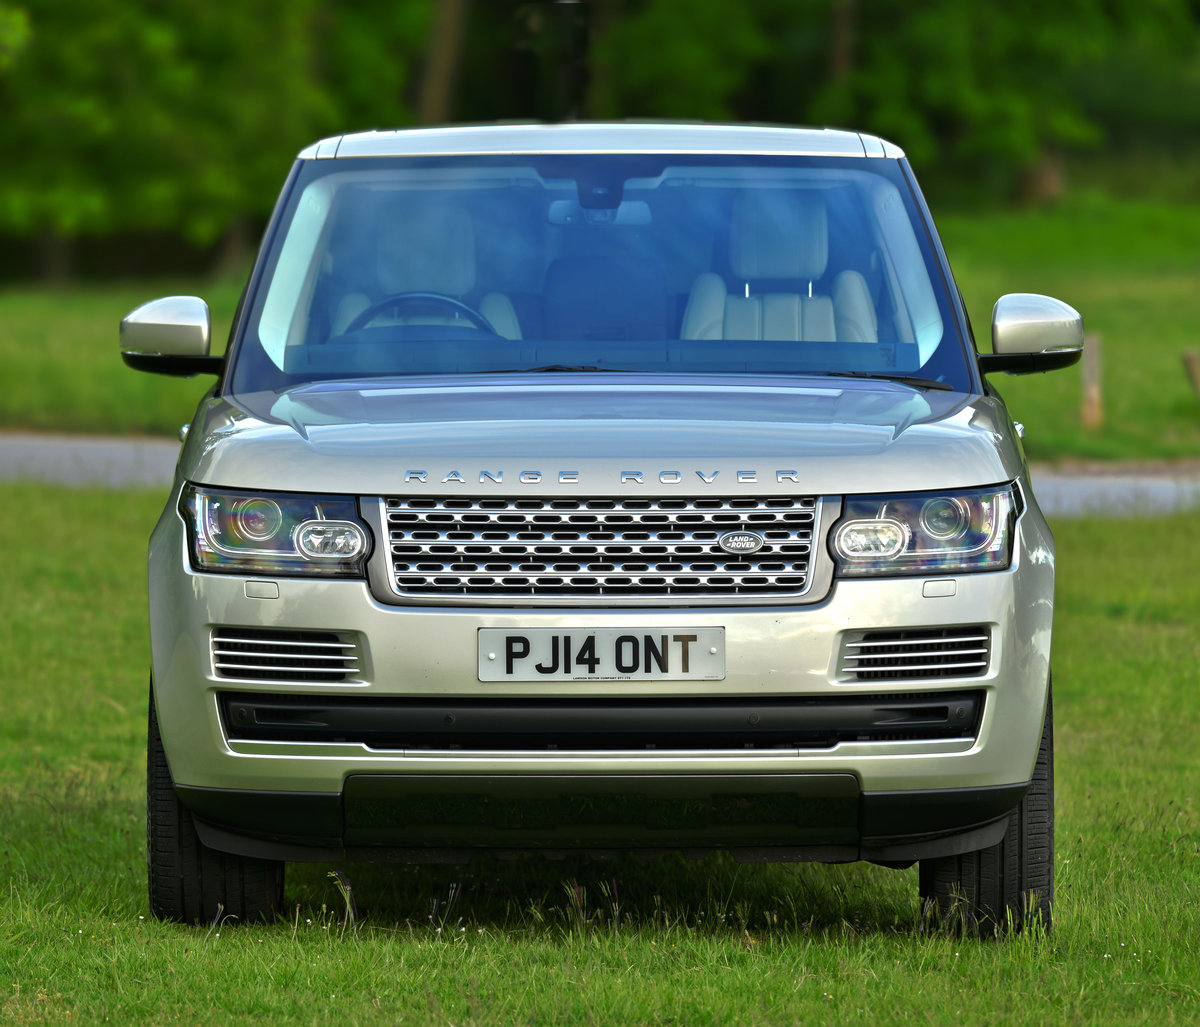 2014 Range Rover Vogue SE 4.4 SD For Sale (picture 2 of 6)